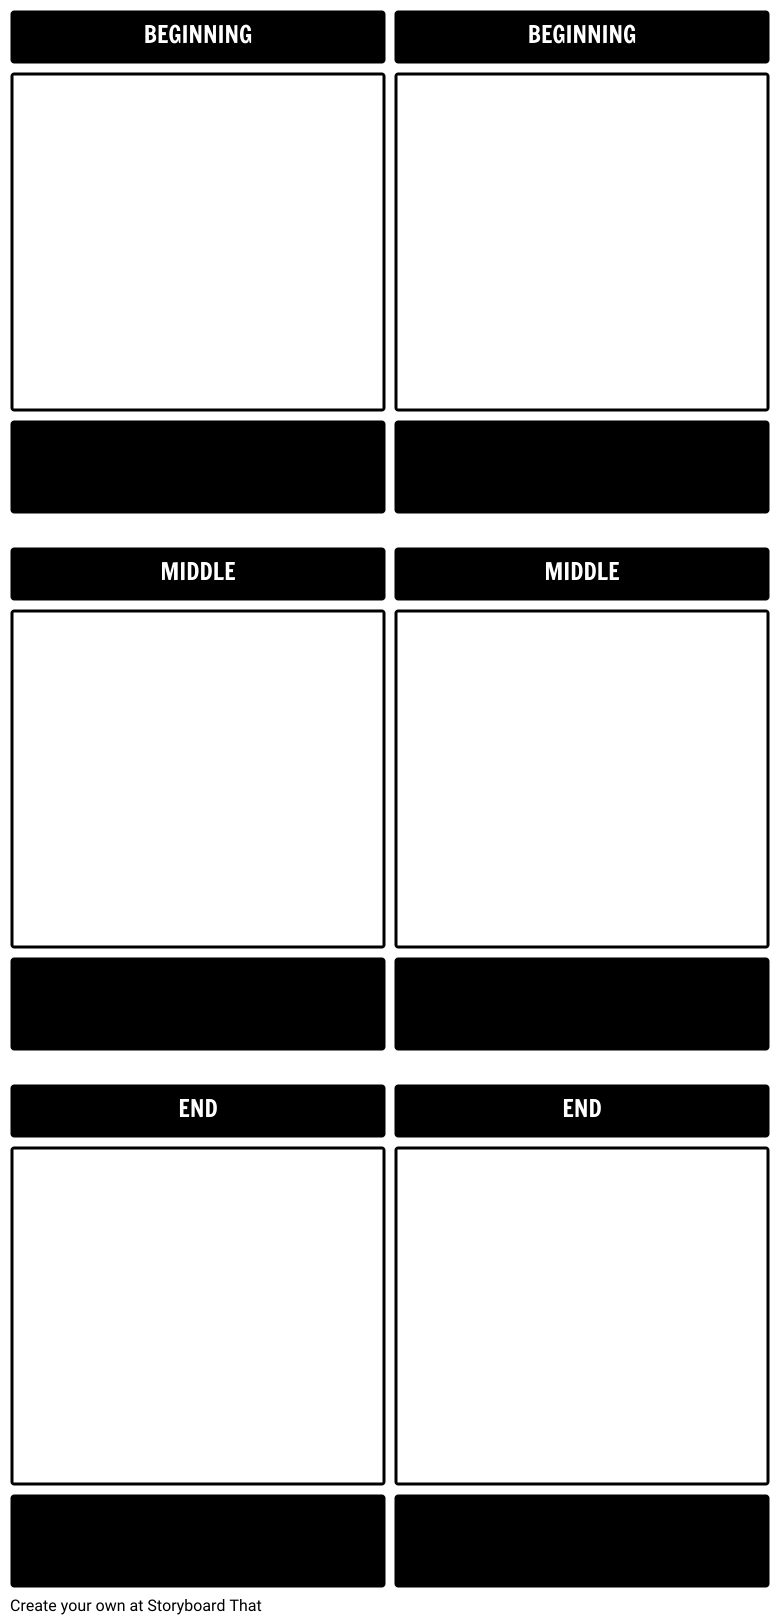 Create A Storyboard Template Or Graphic Organizer Template For Your